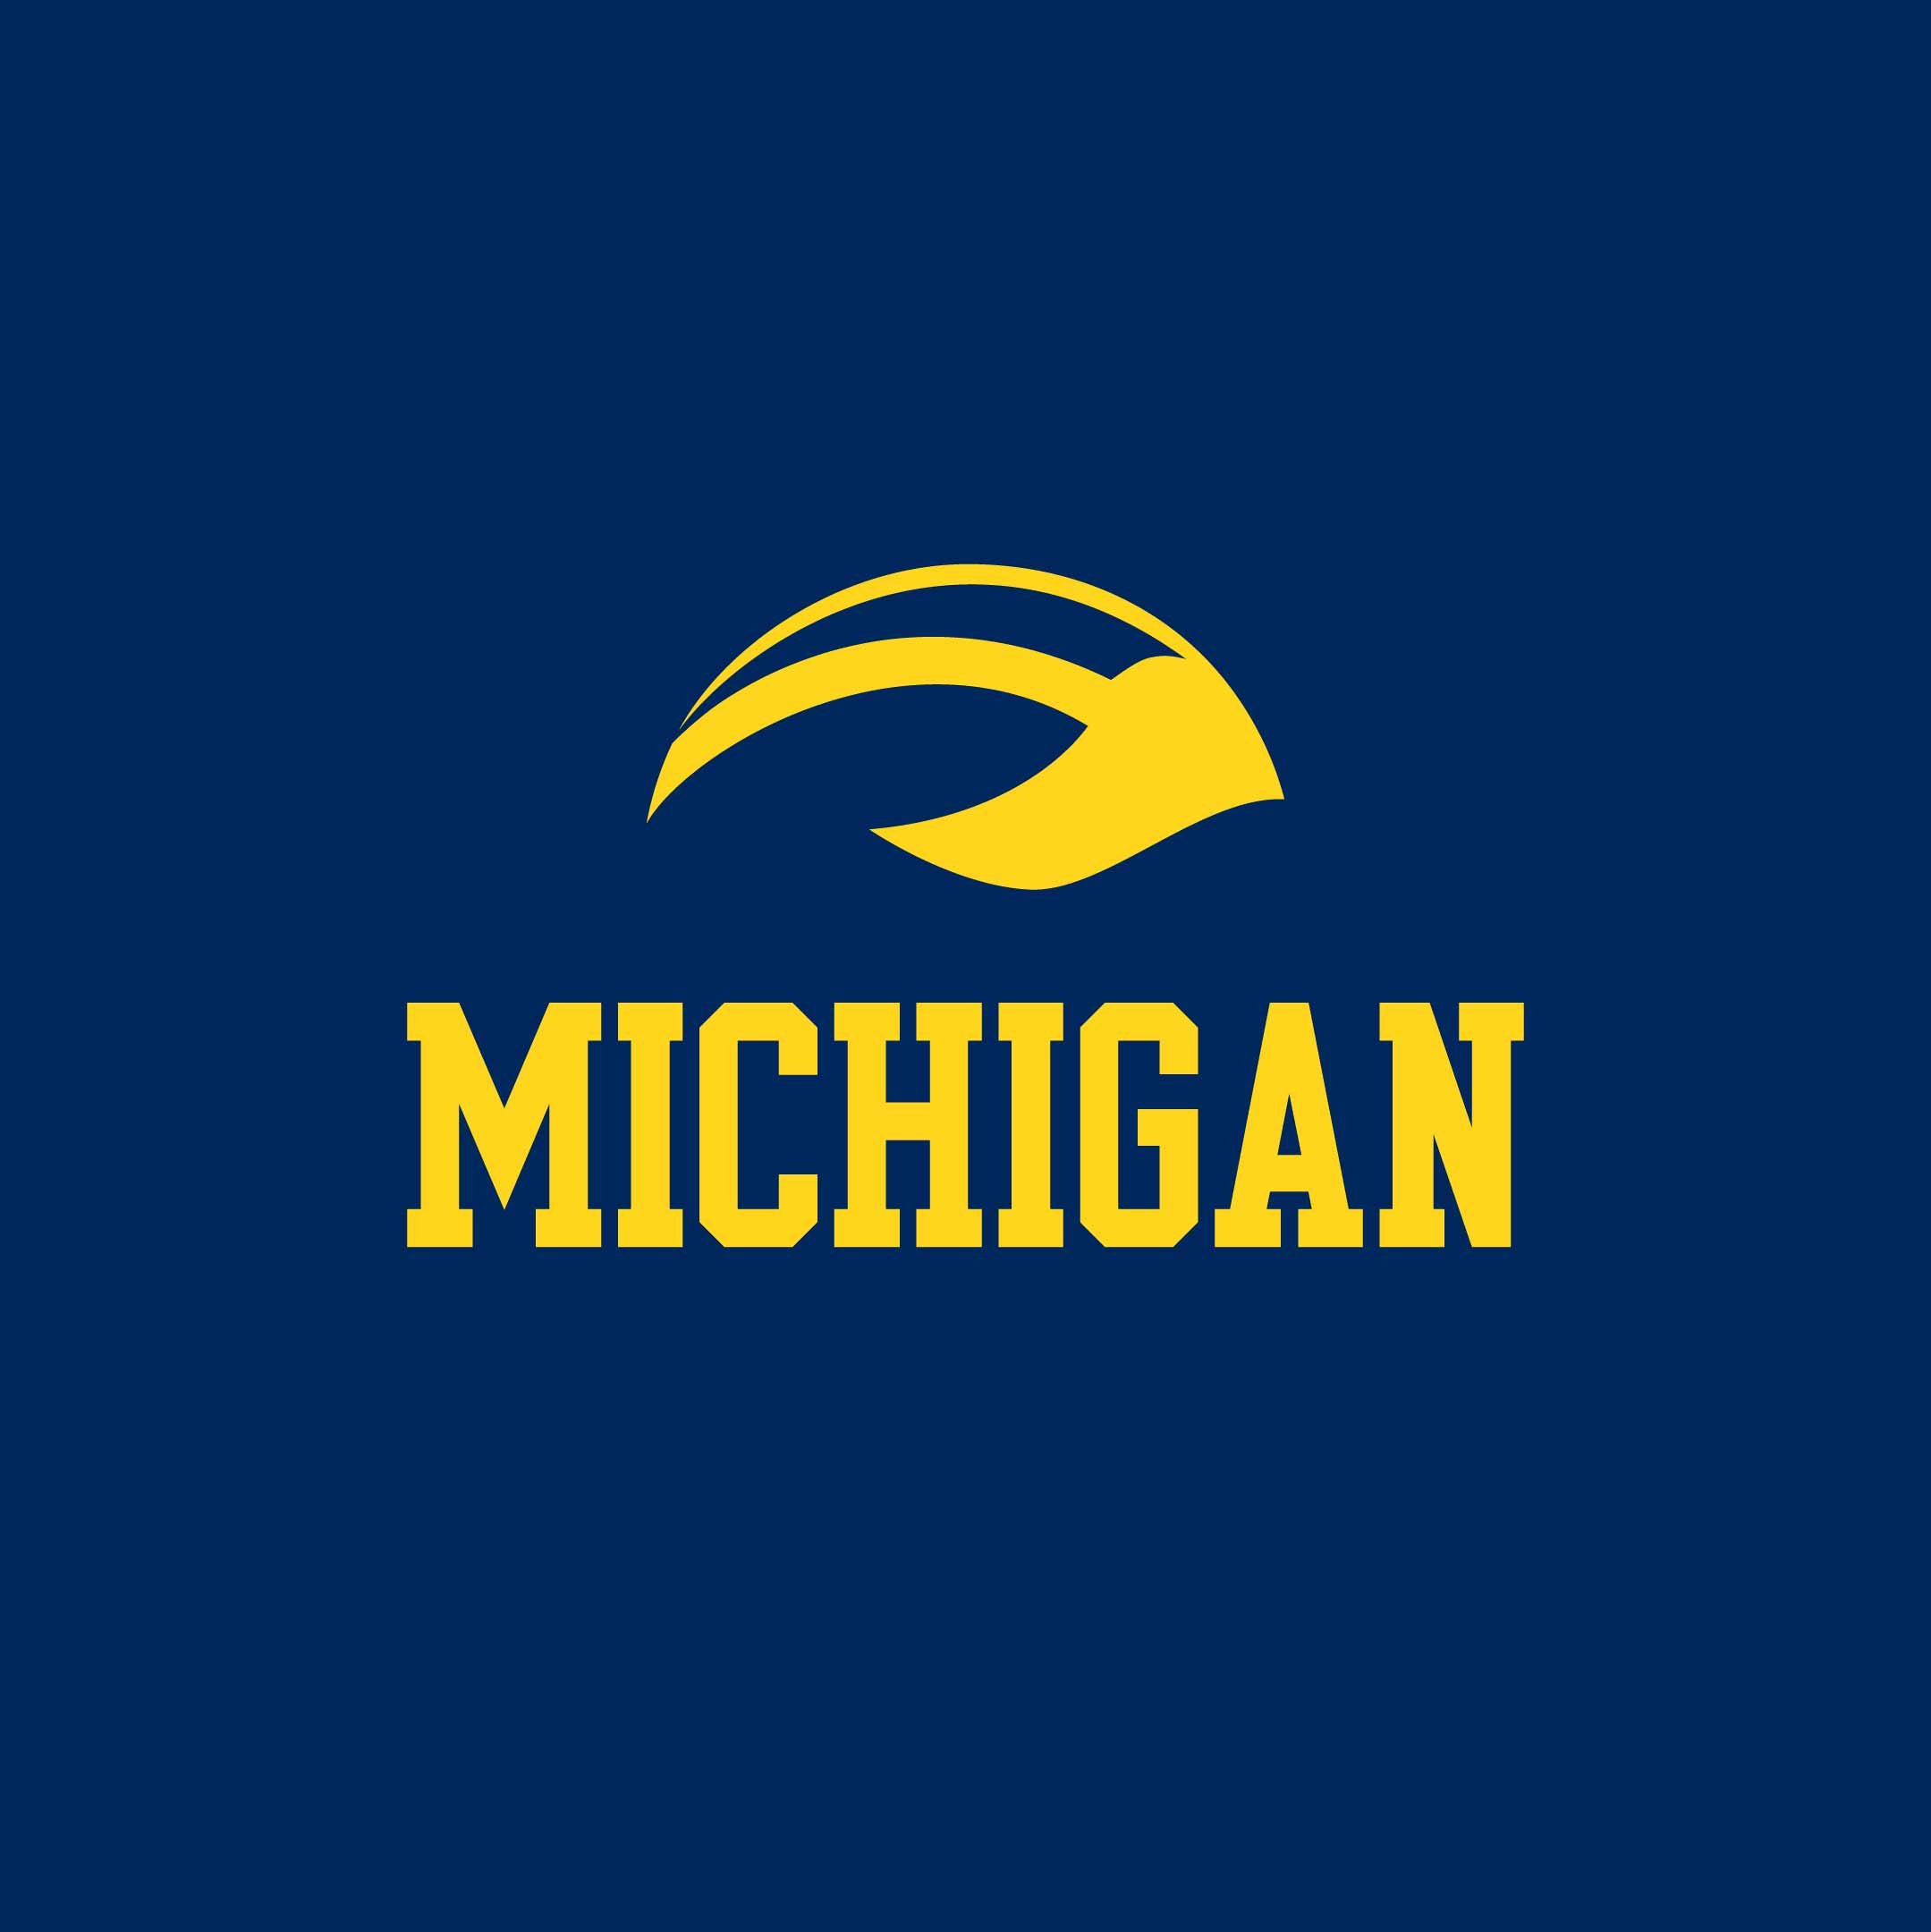 michigan wolverines logo wallpaper wallpapersafari